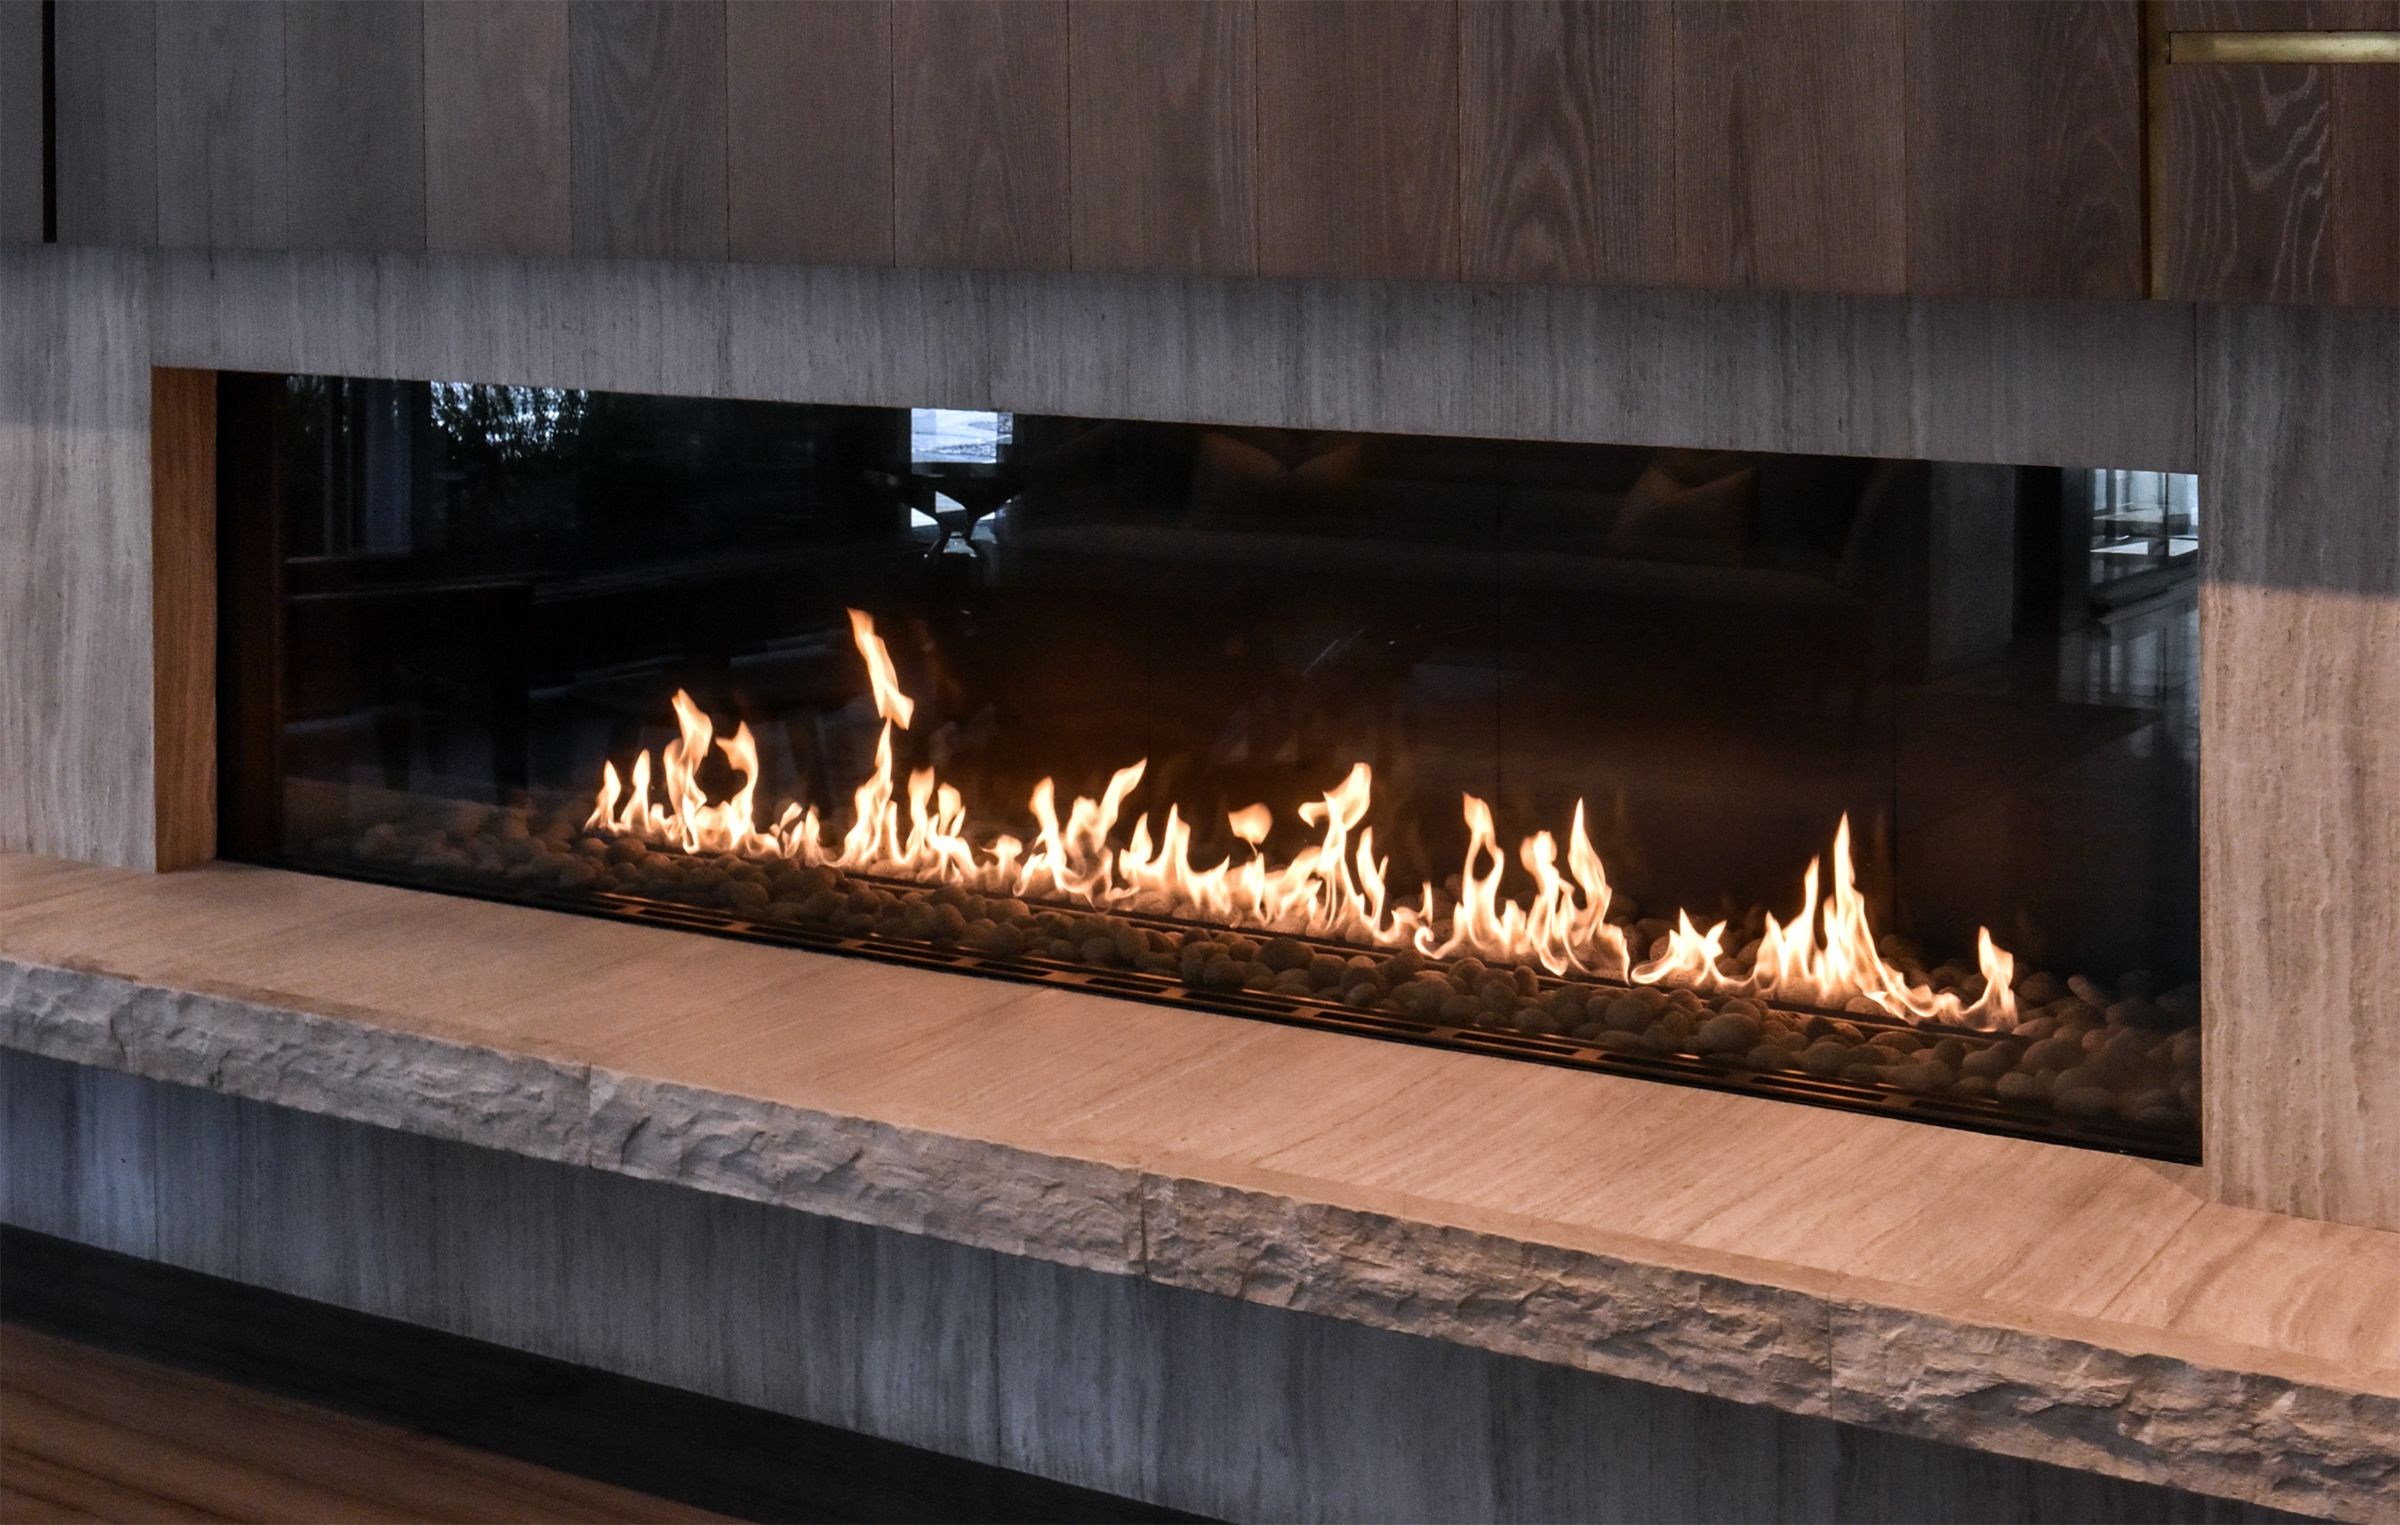 This Modern Linear Fireplace Can Turn Up The Heat And The Charm